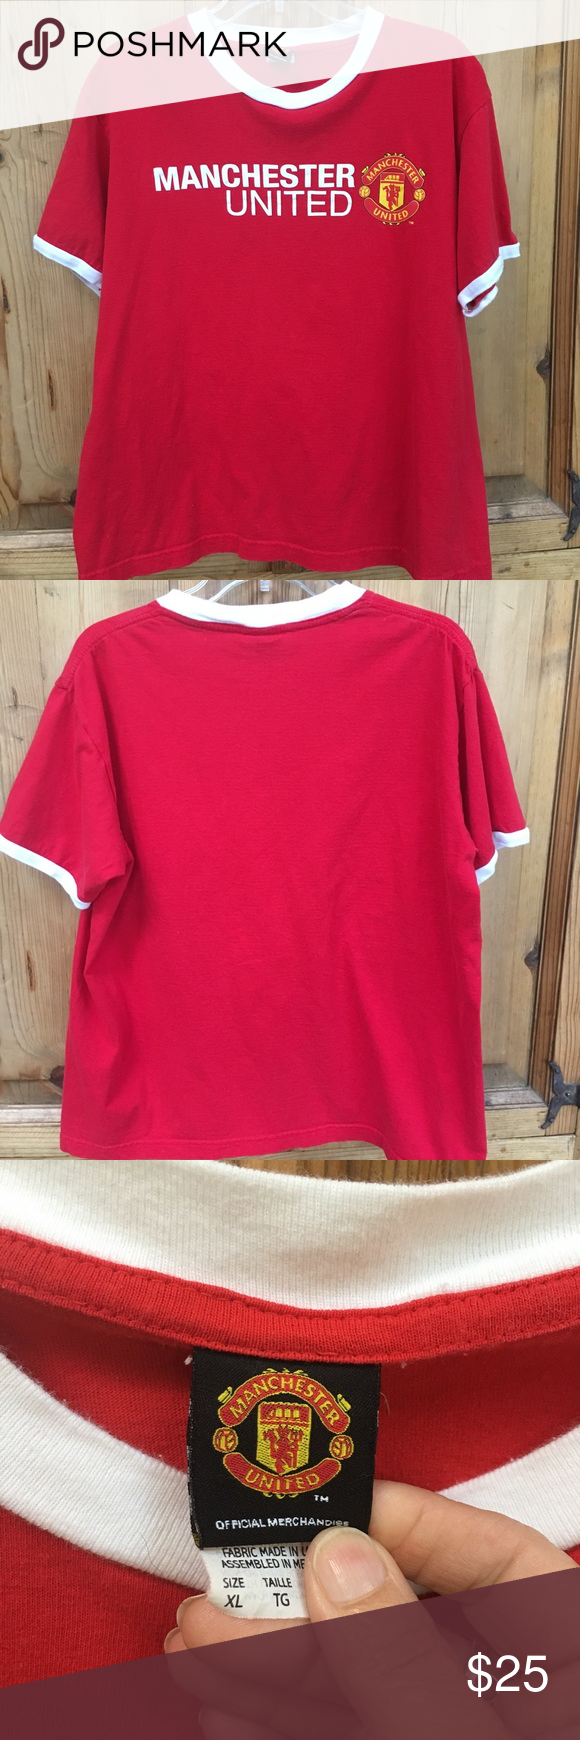 Manchester United FC T-Shirt Ladies, here's your chance to show your fave soccer club some love! Manchester United Football Club fan t-shirt, size XL. May be vintage. Tops Tees - Short Sleeve